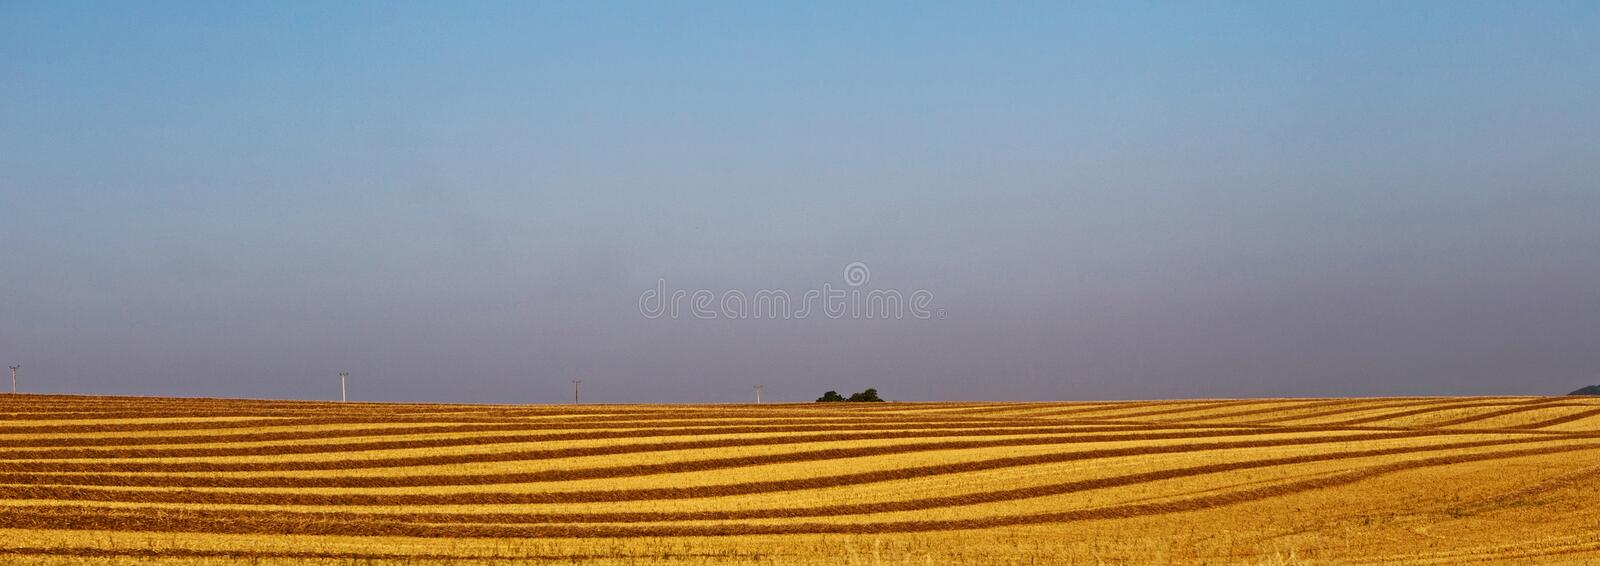 Yellow harvested wheat field royalty free stock photo